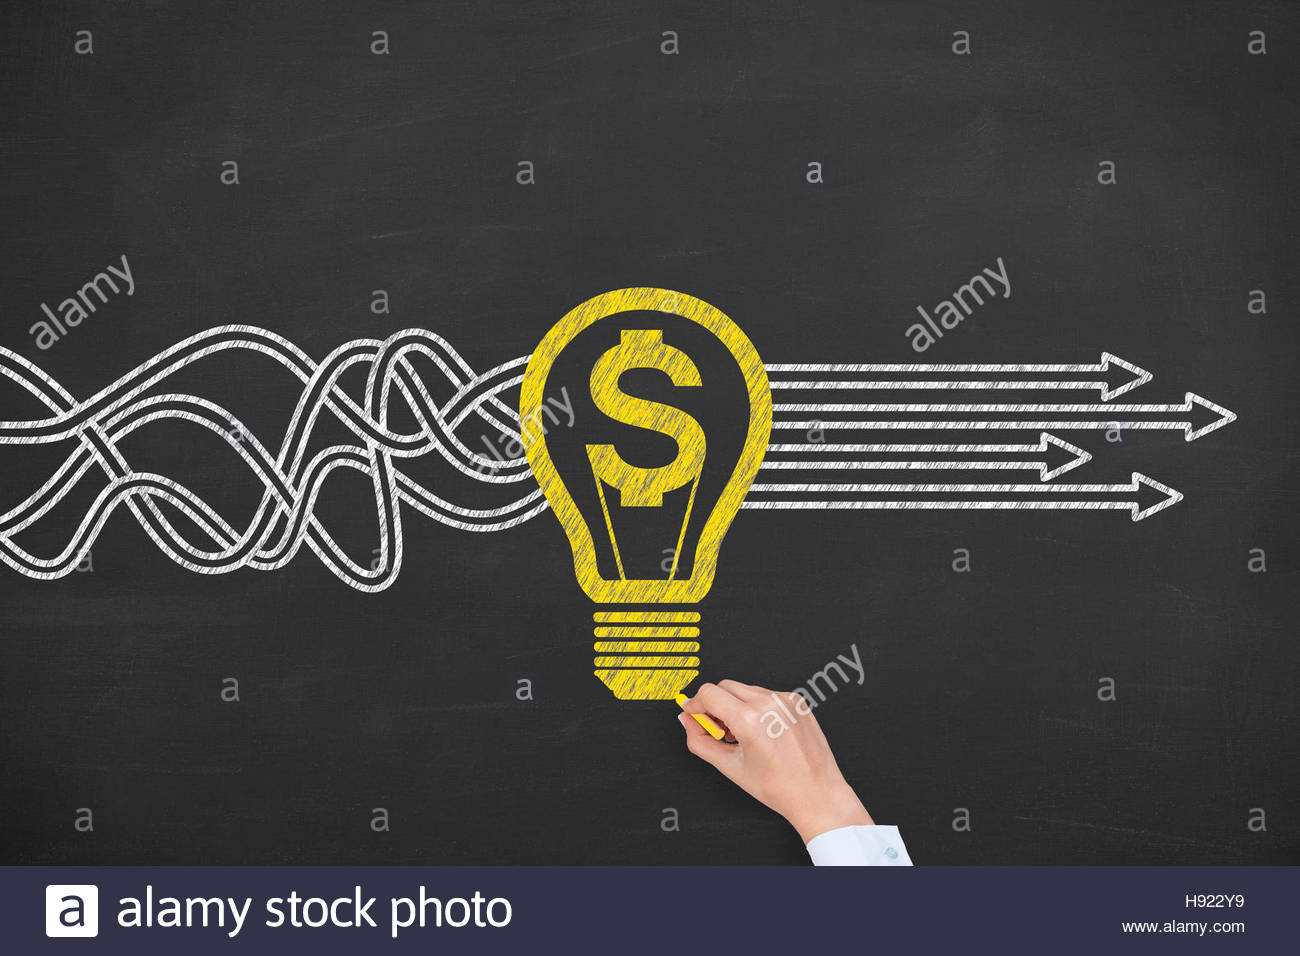 Finance Concepts Solution on Chalkboard Photo Stock